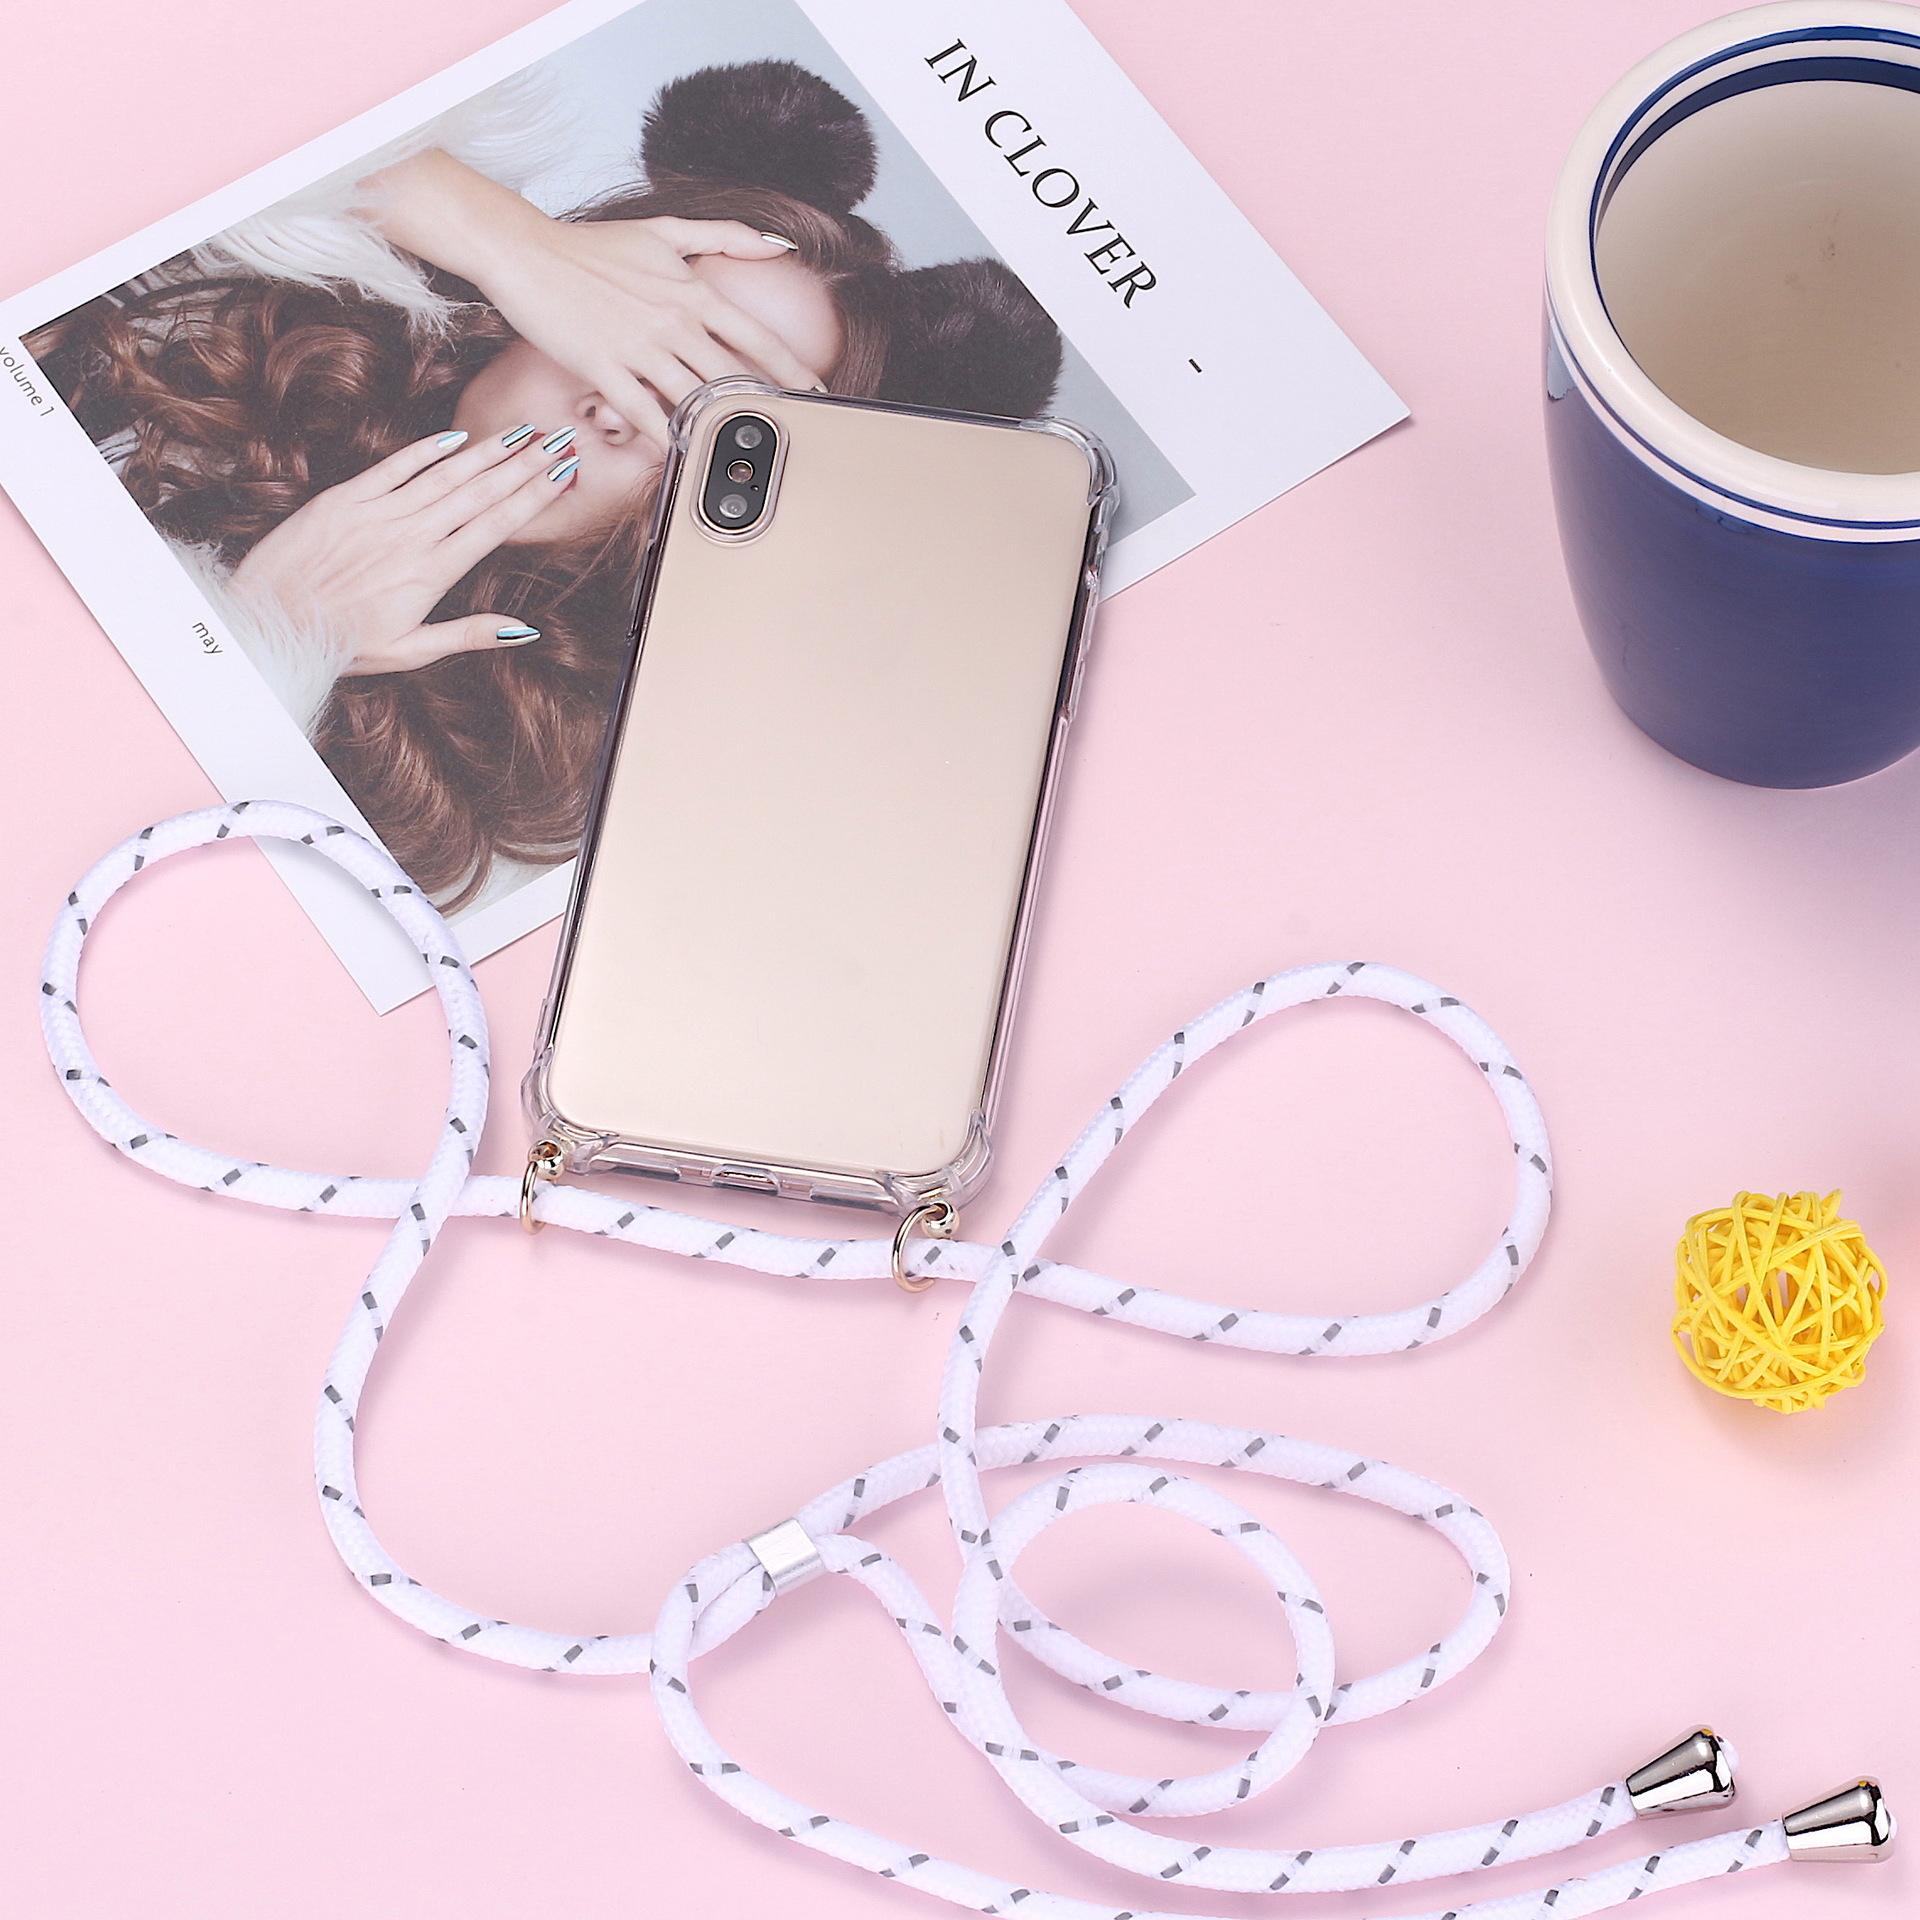 Luxury Lanyard Silicone Phone Case For iPhone 11 Pro Max SE XSmax XR XS X 8 7 Plus Ultra-thin Necklace Rope Cover Coque